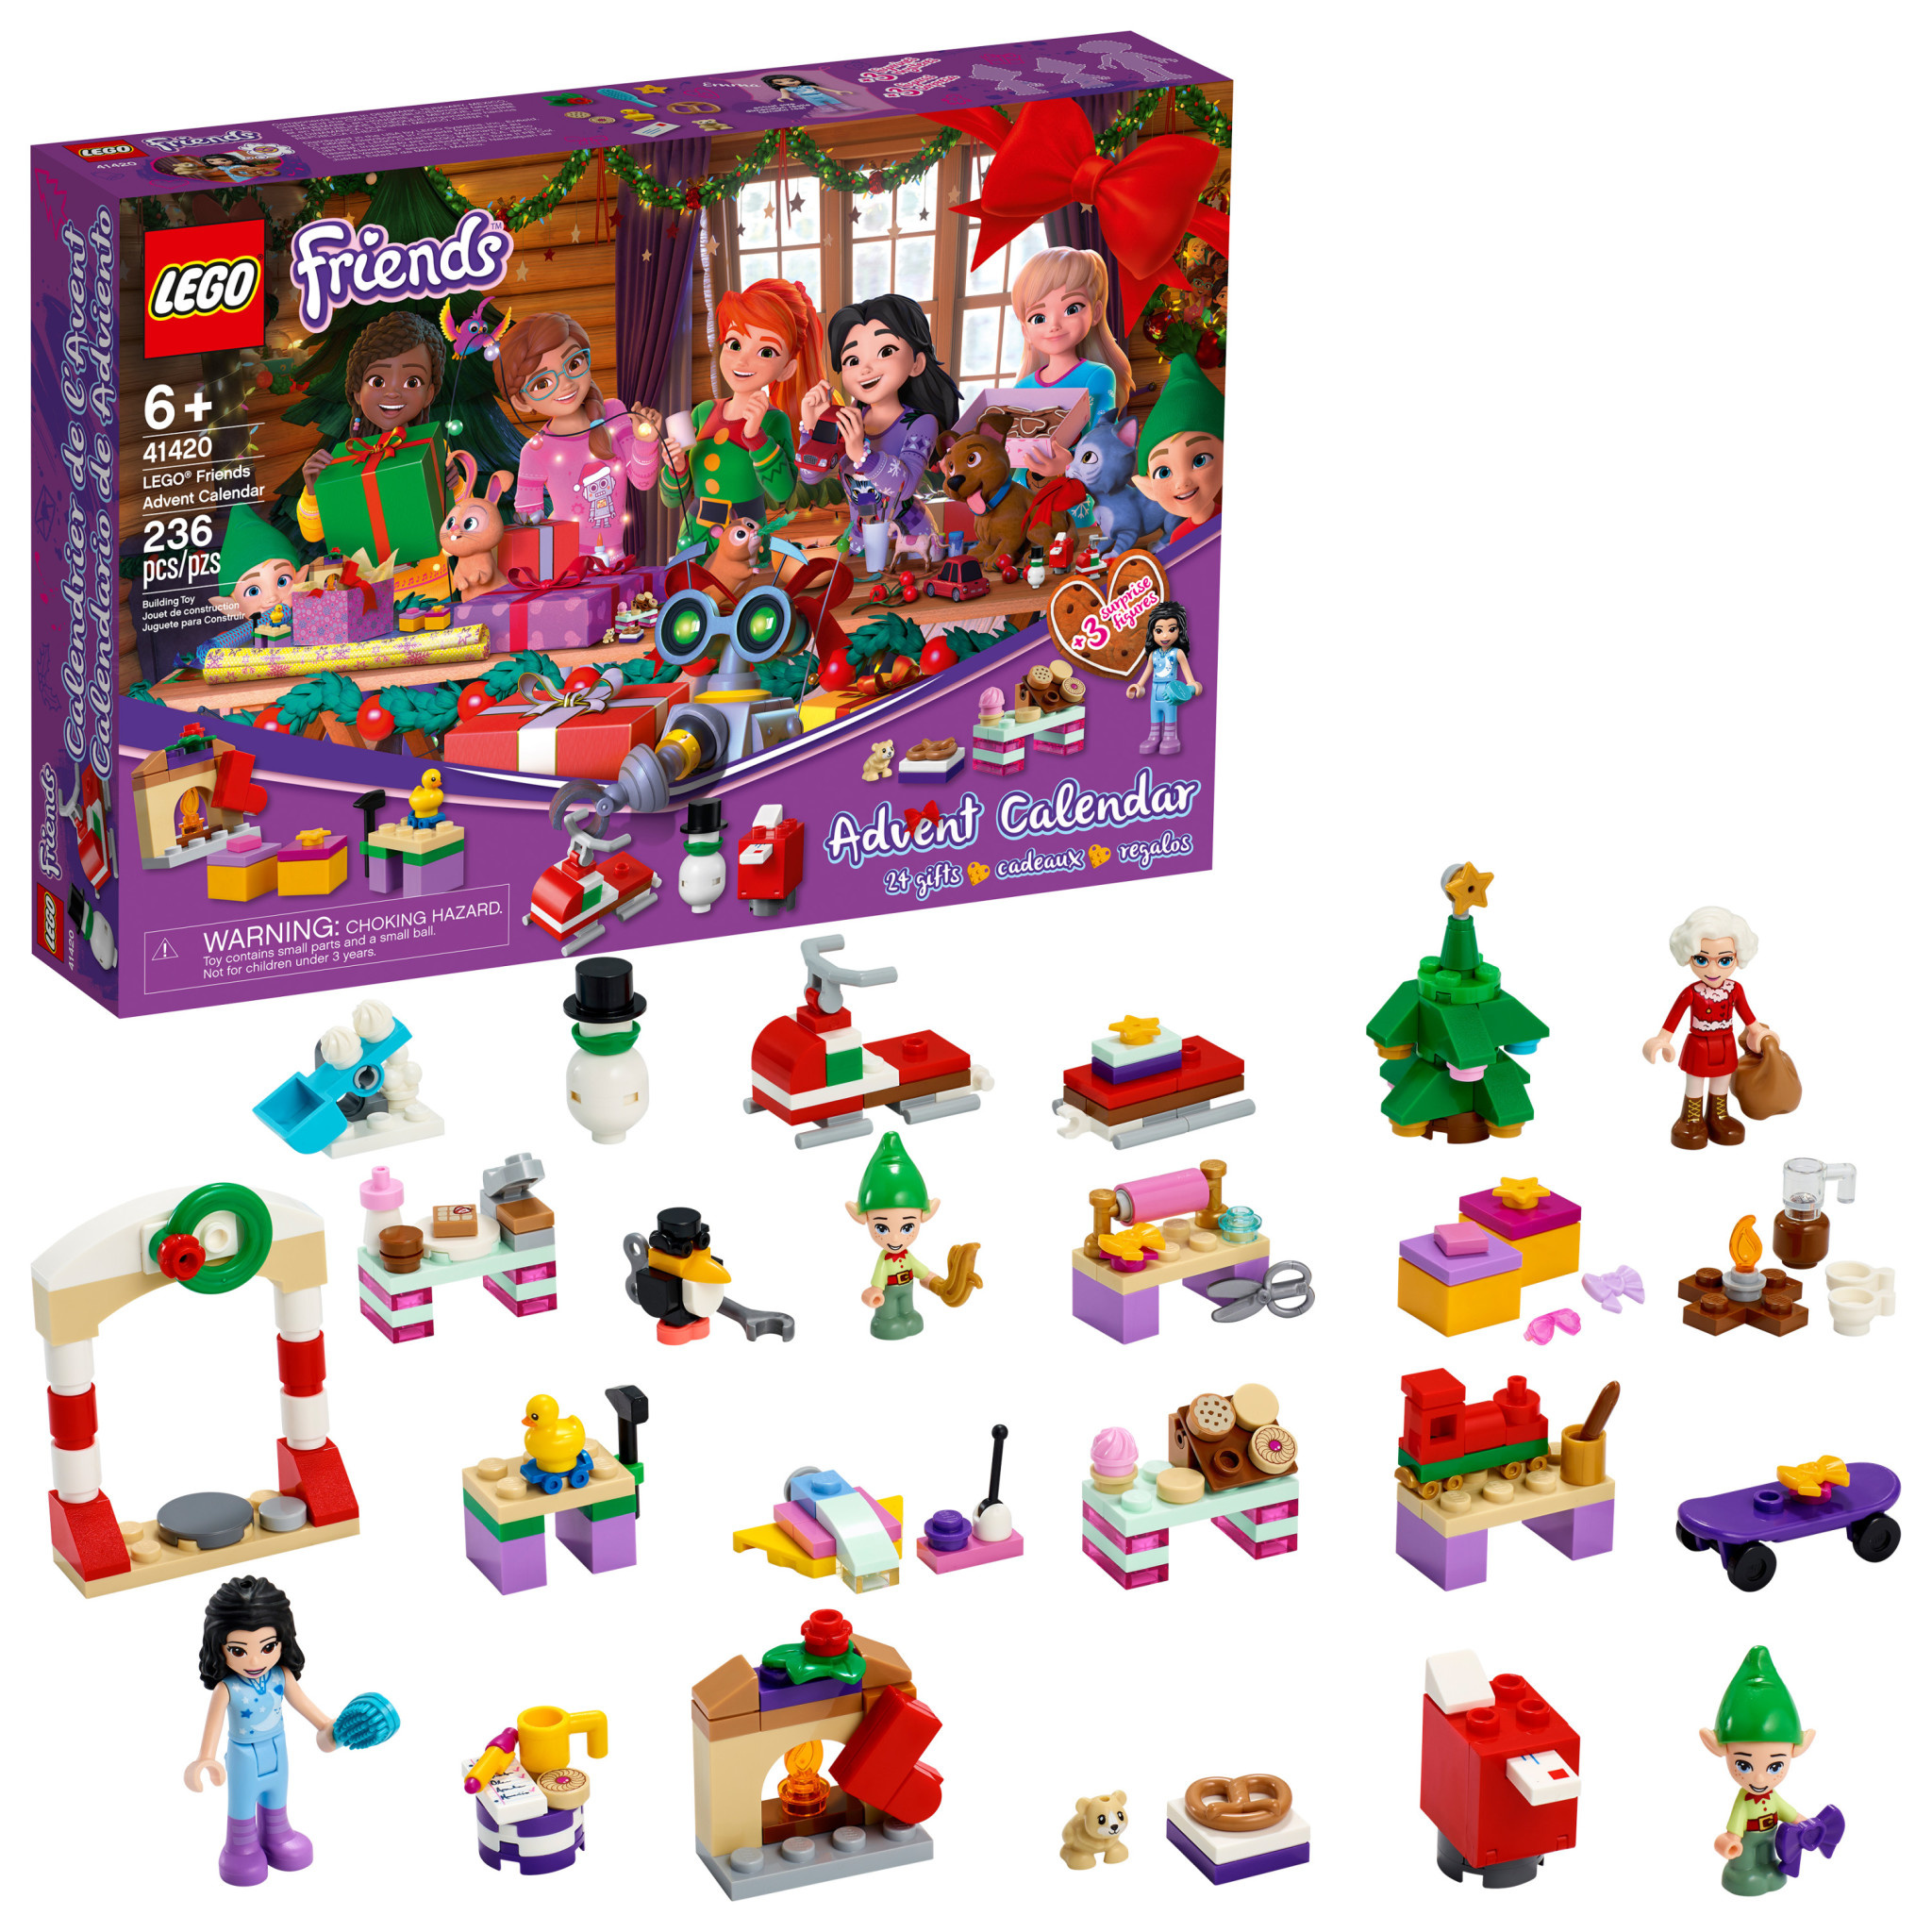 Friends Advent LEGO Calendar 2020-2